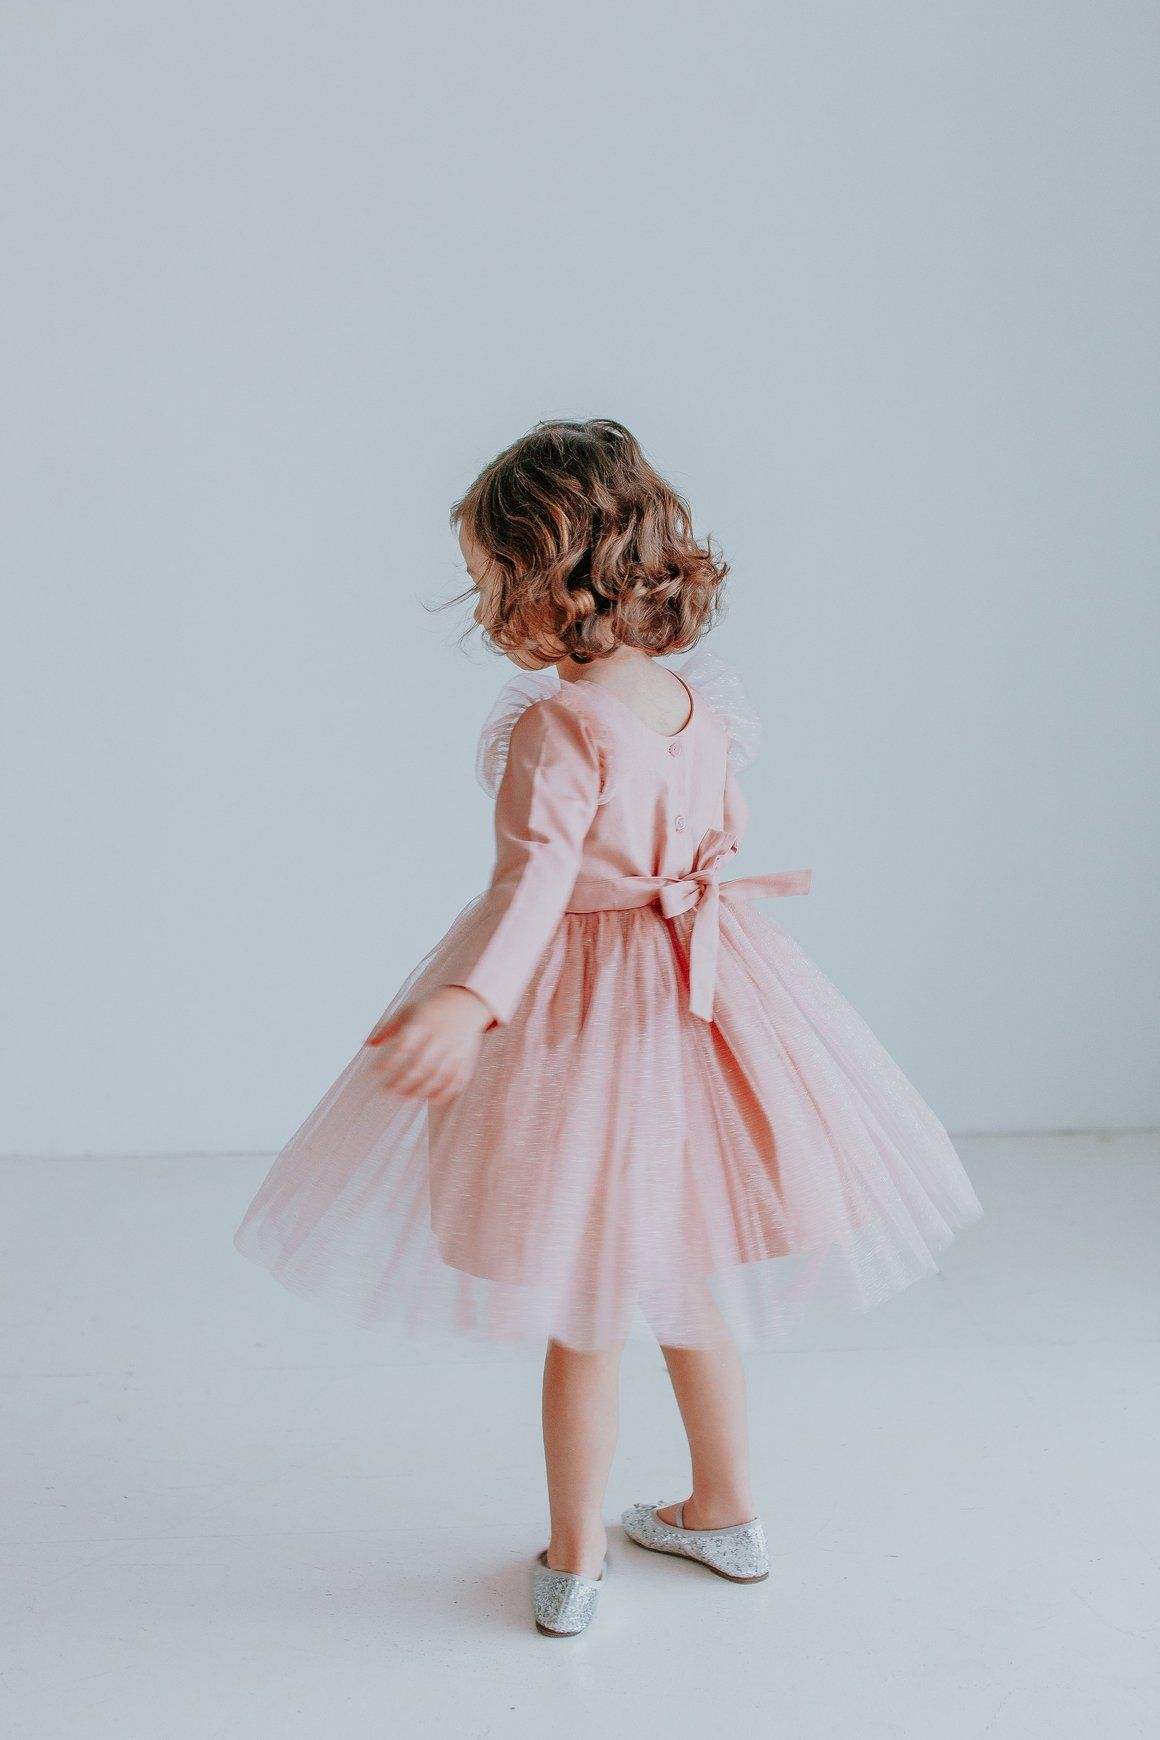 Giselle Dress - tulle dress, the cutest special occasion dress for girls, only from cuteheads.com